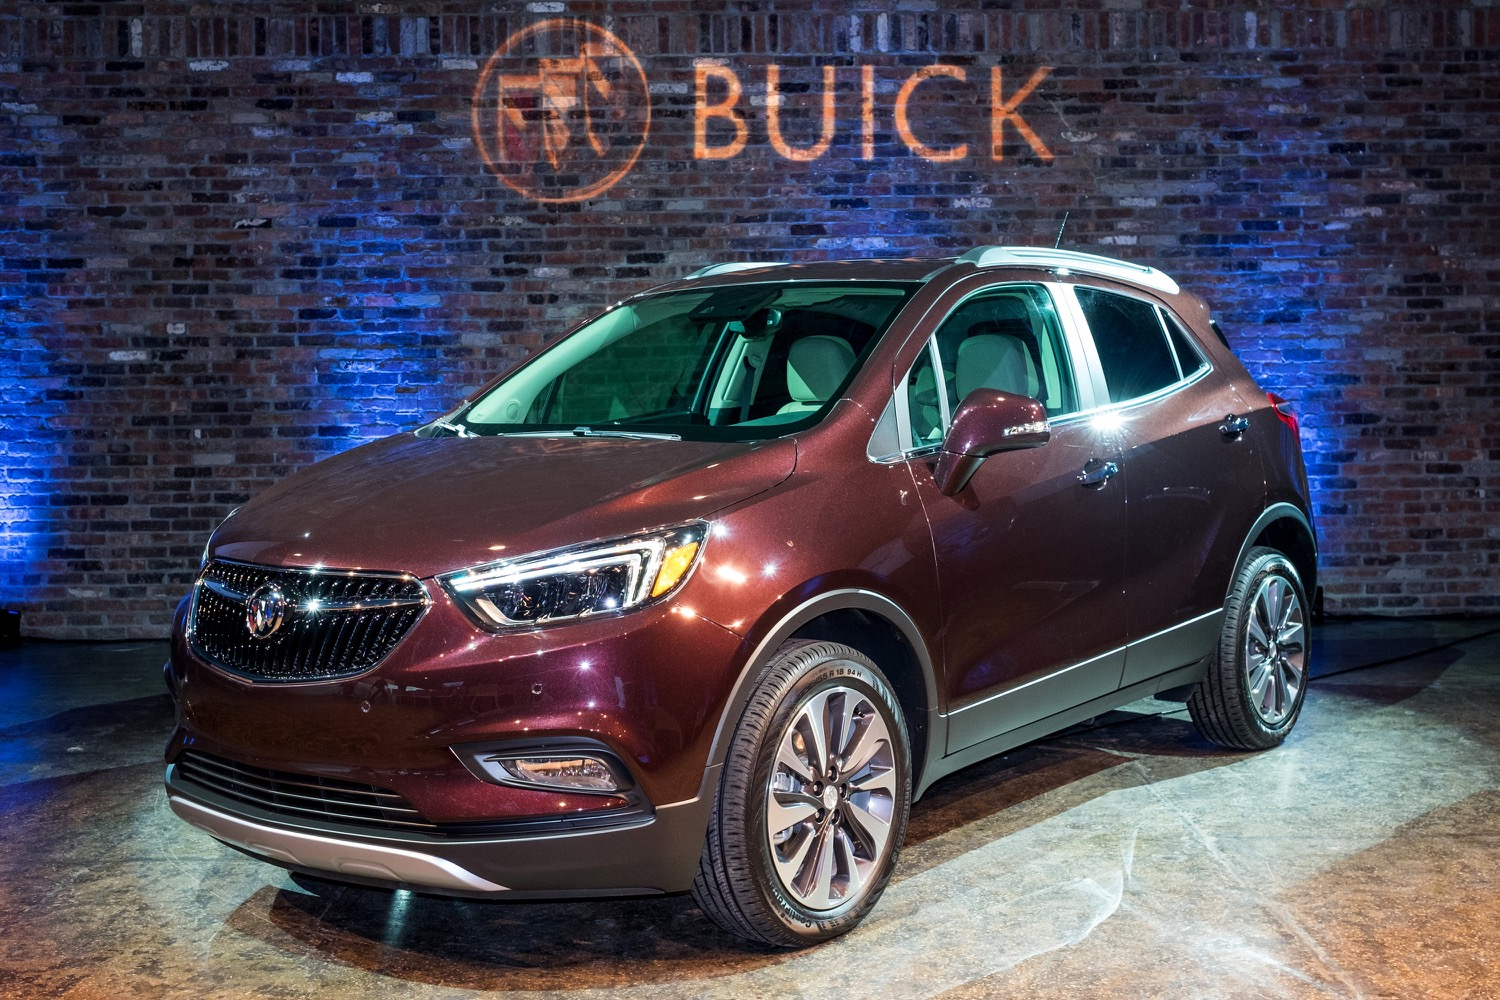 Buick Encore Discount Totals $4,500 In April 2020 | Gm Authority New 2022 Buick Encore Engine Options, Features, Incentives